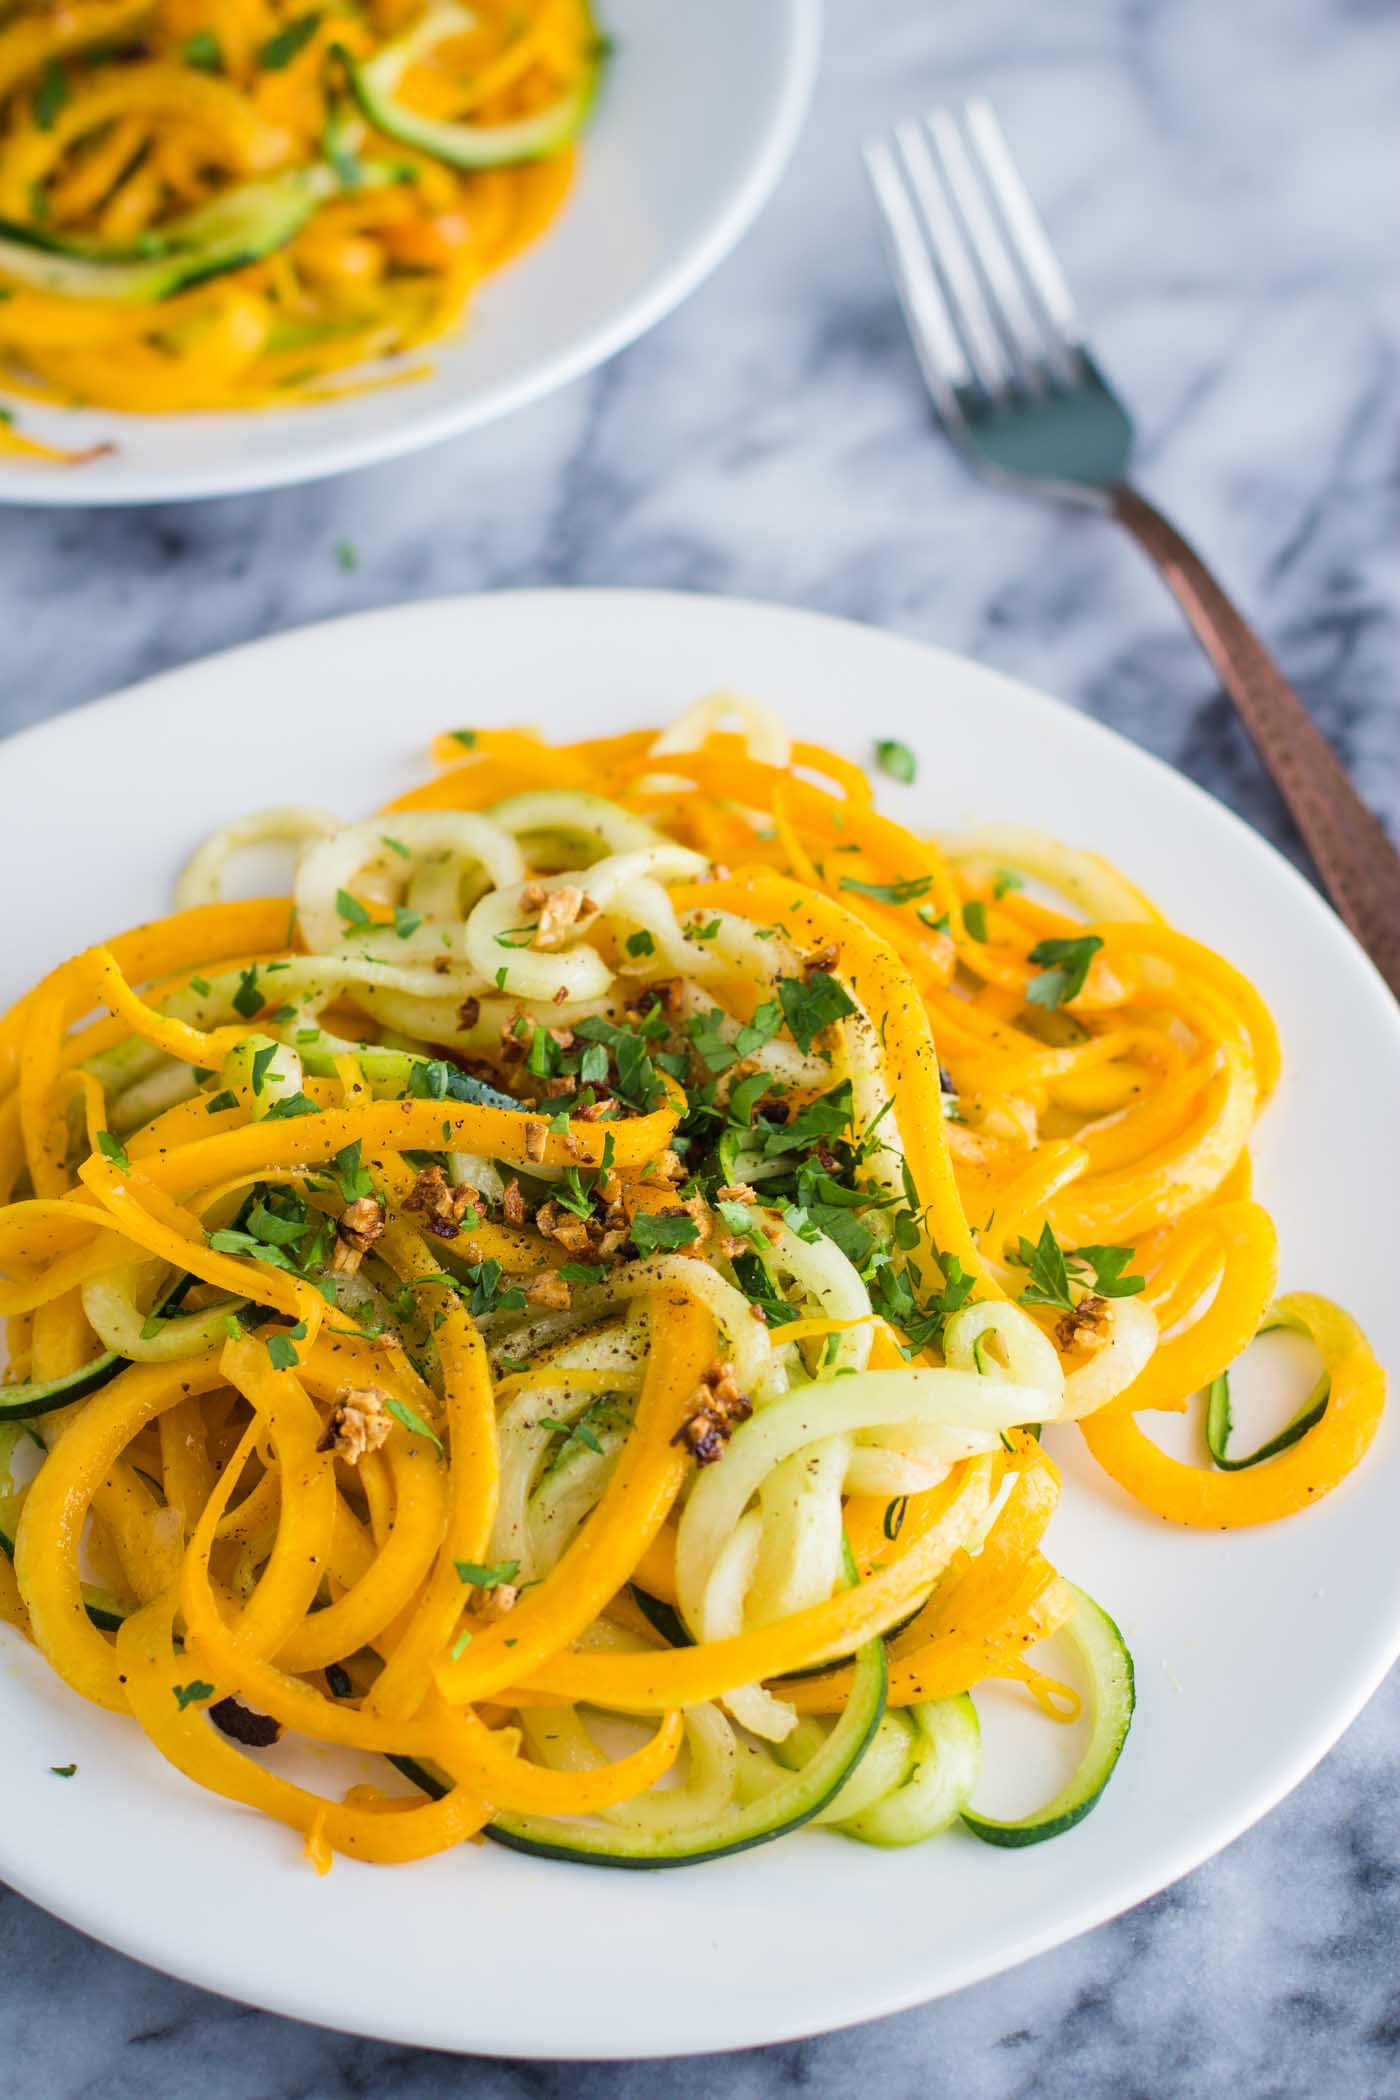 Garlic Herb Spiralized Veggies B Britnell